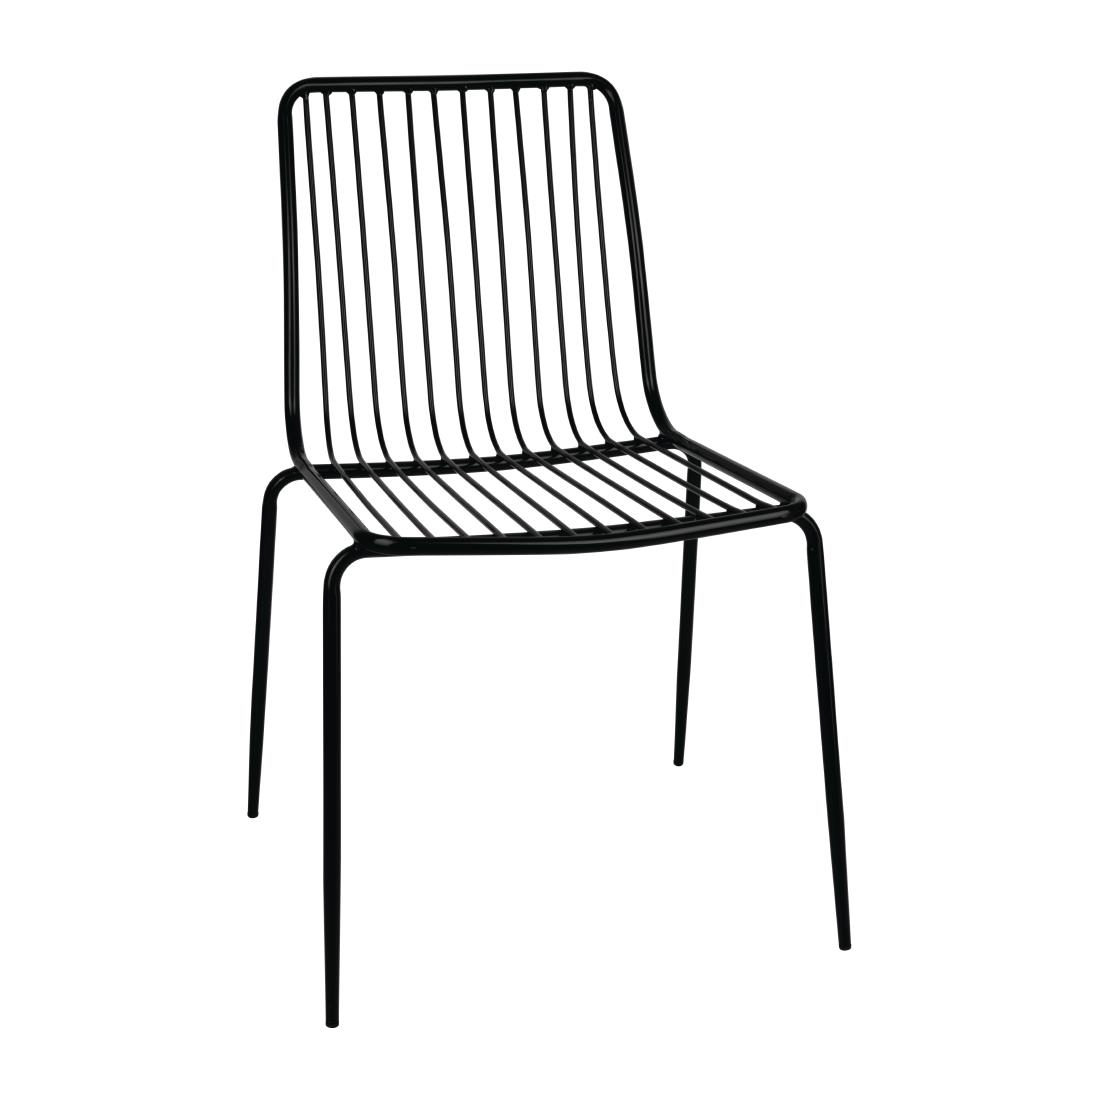 Image of Bolero Steel Wire Dining Chairs (Pack of 4) Pack of 4